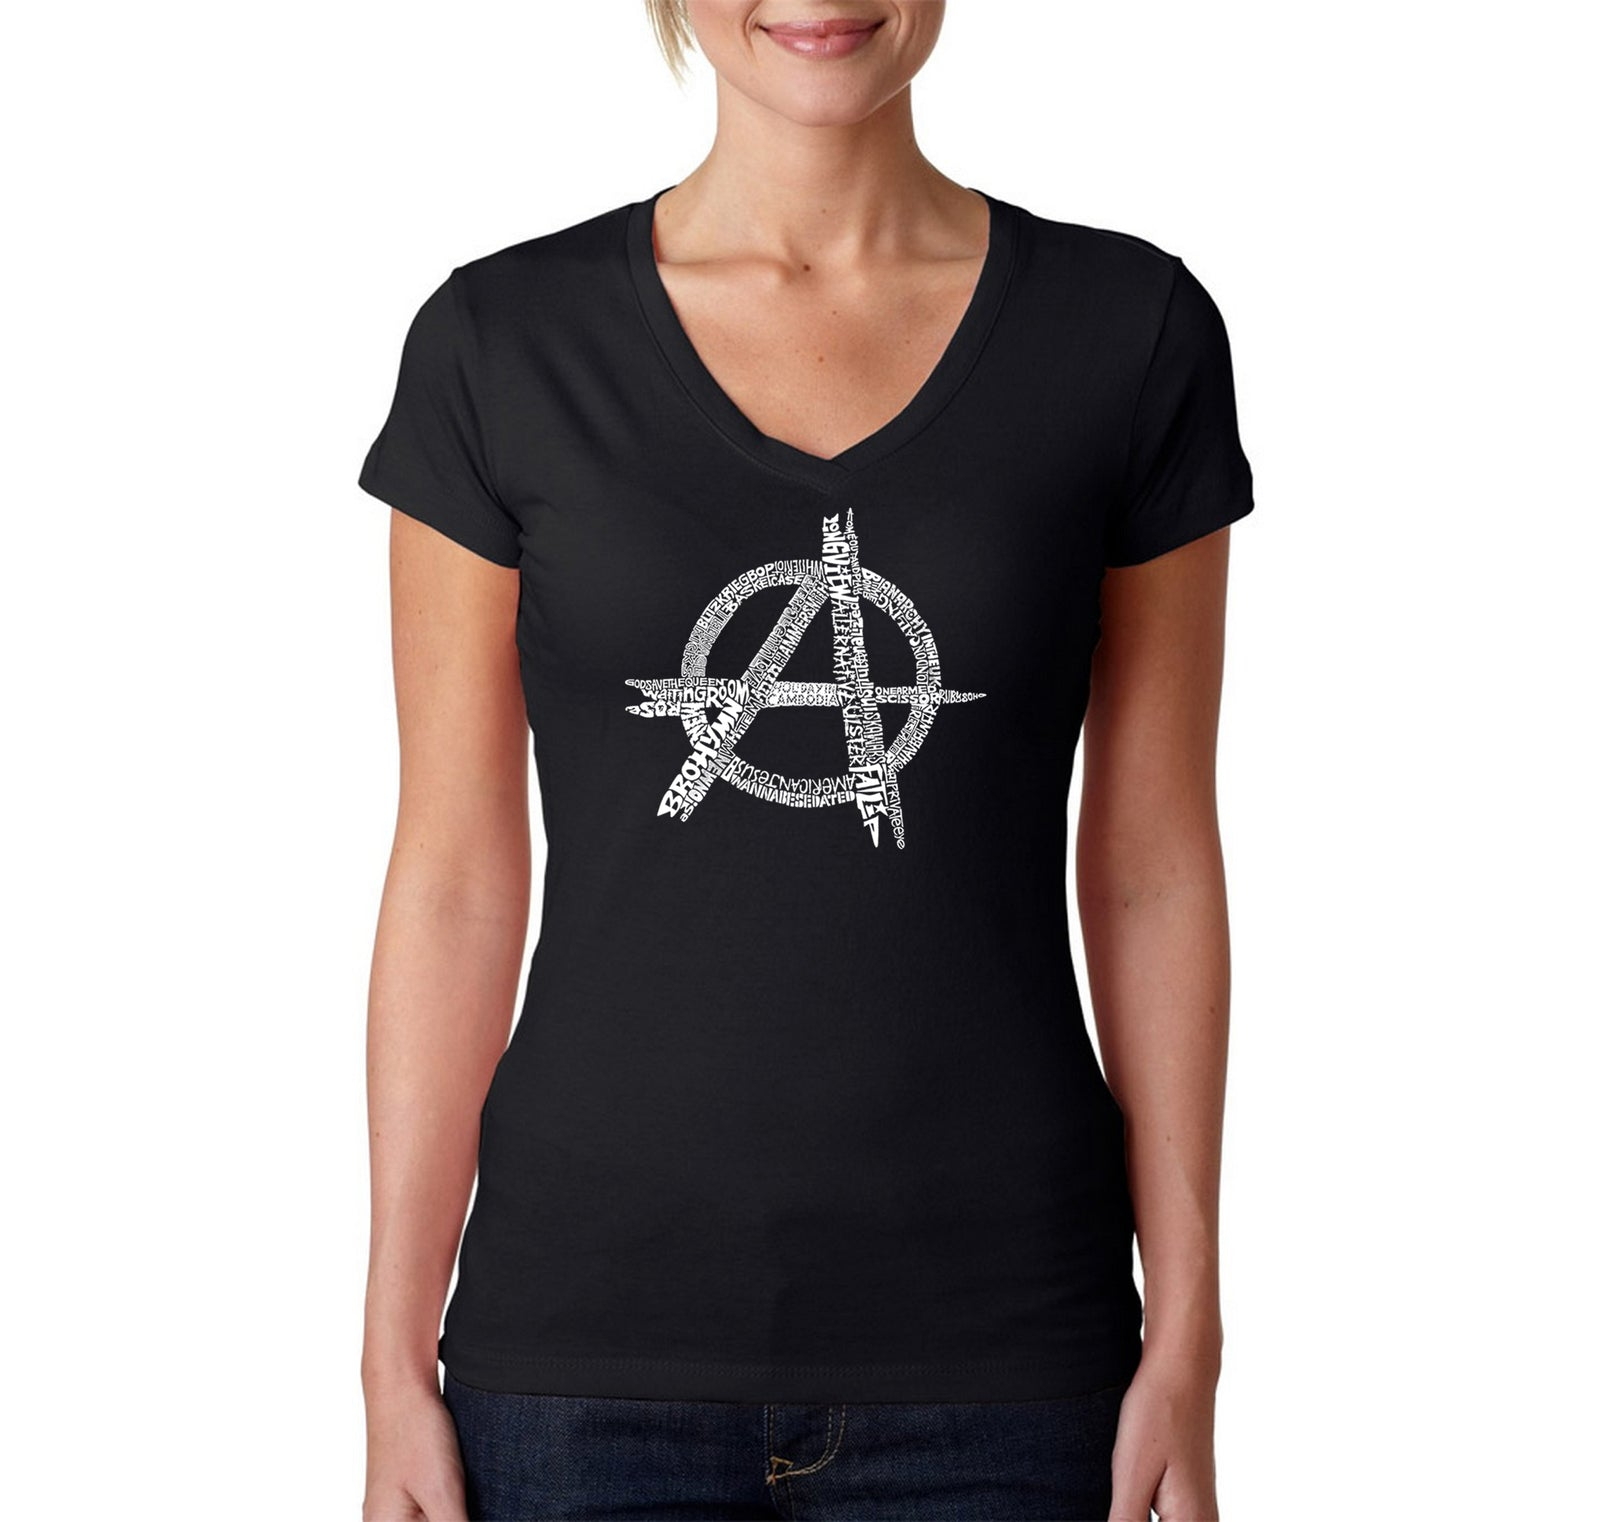 Women's V-Neck T-Shirt - GREAT ALL TIME PUNK SONGS